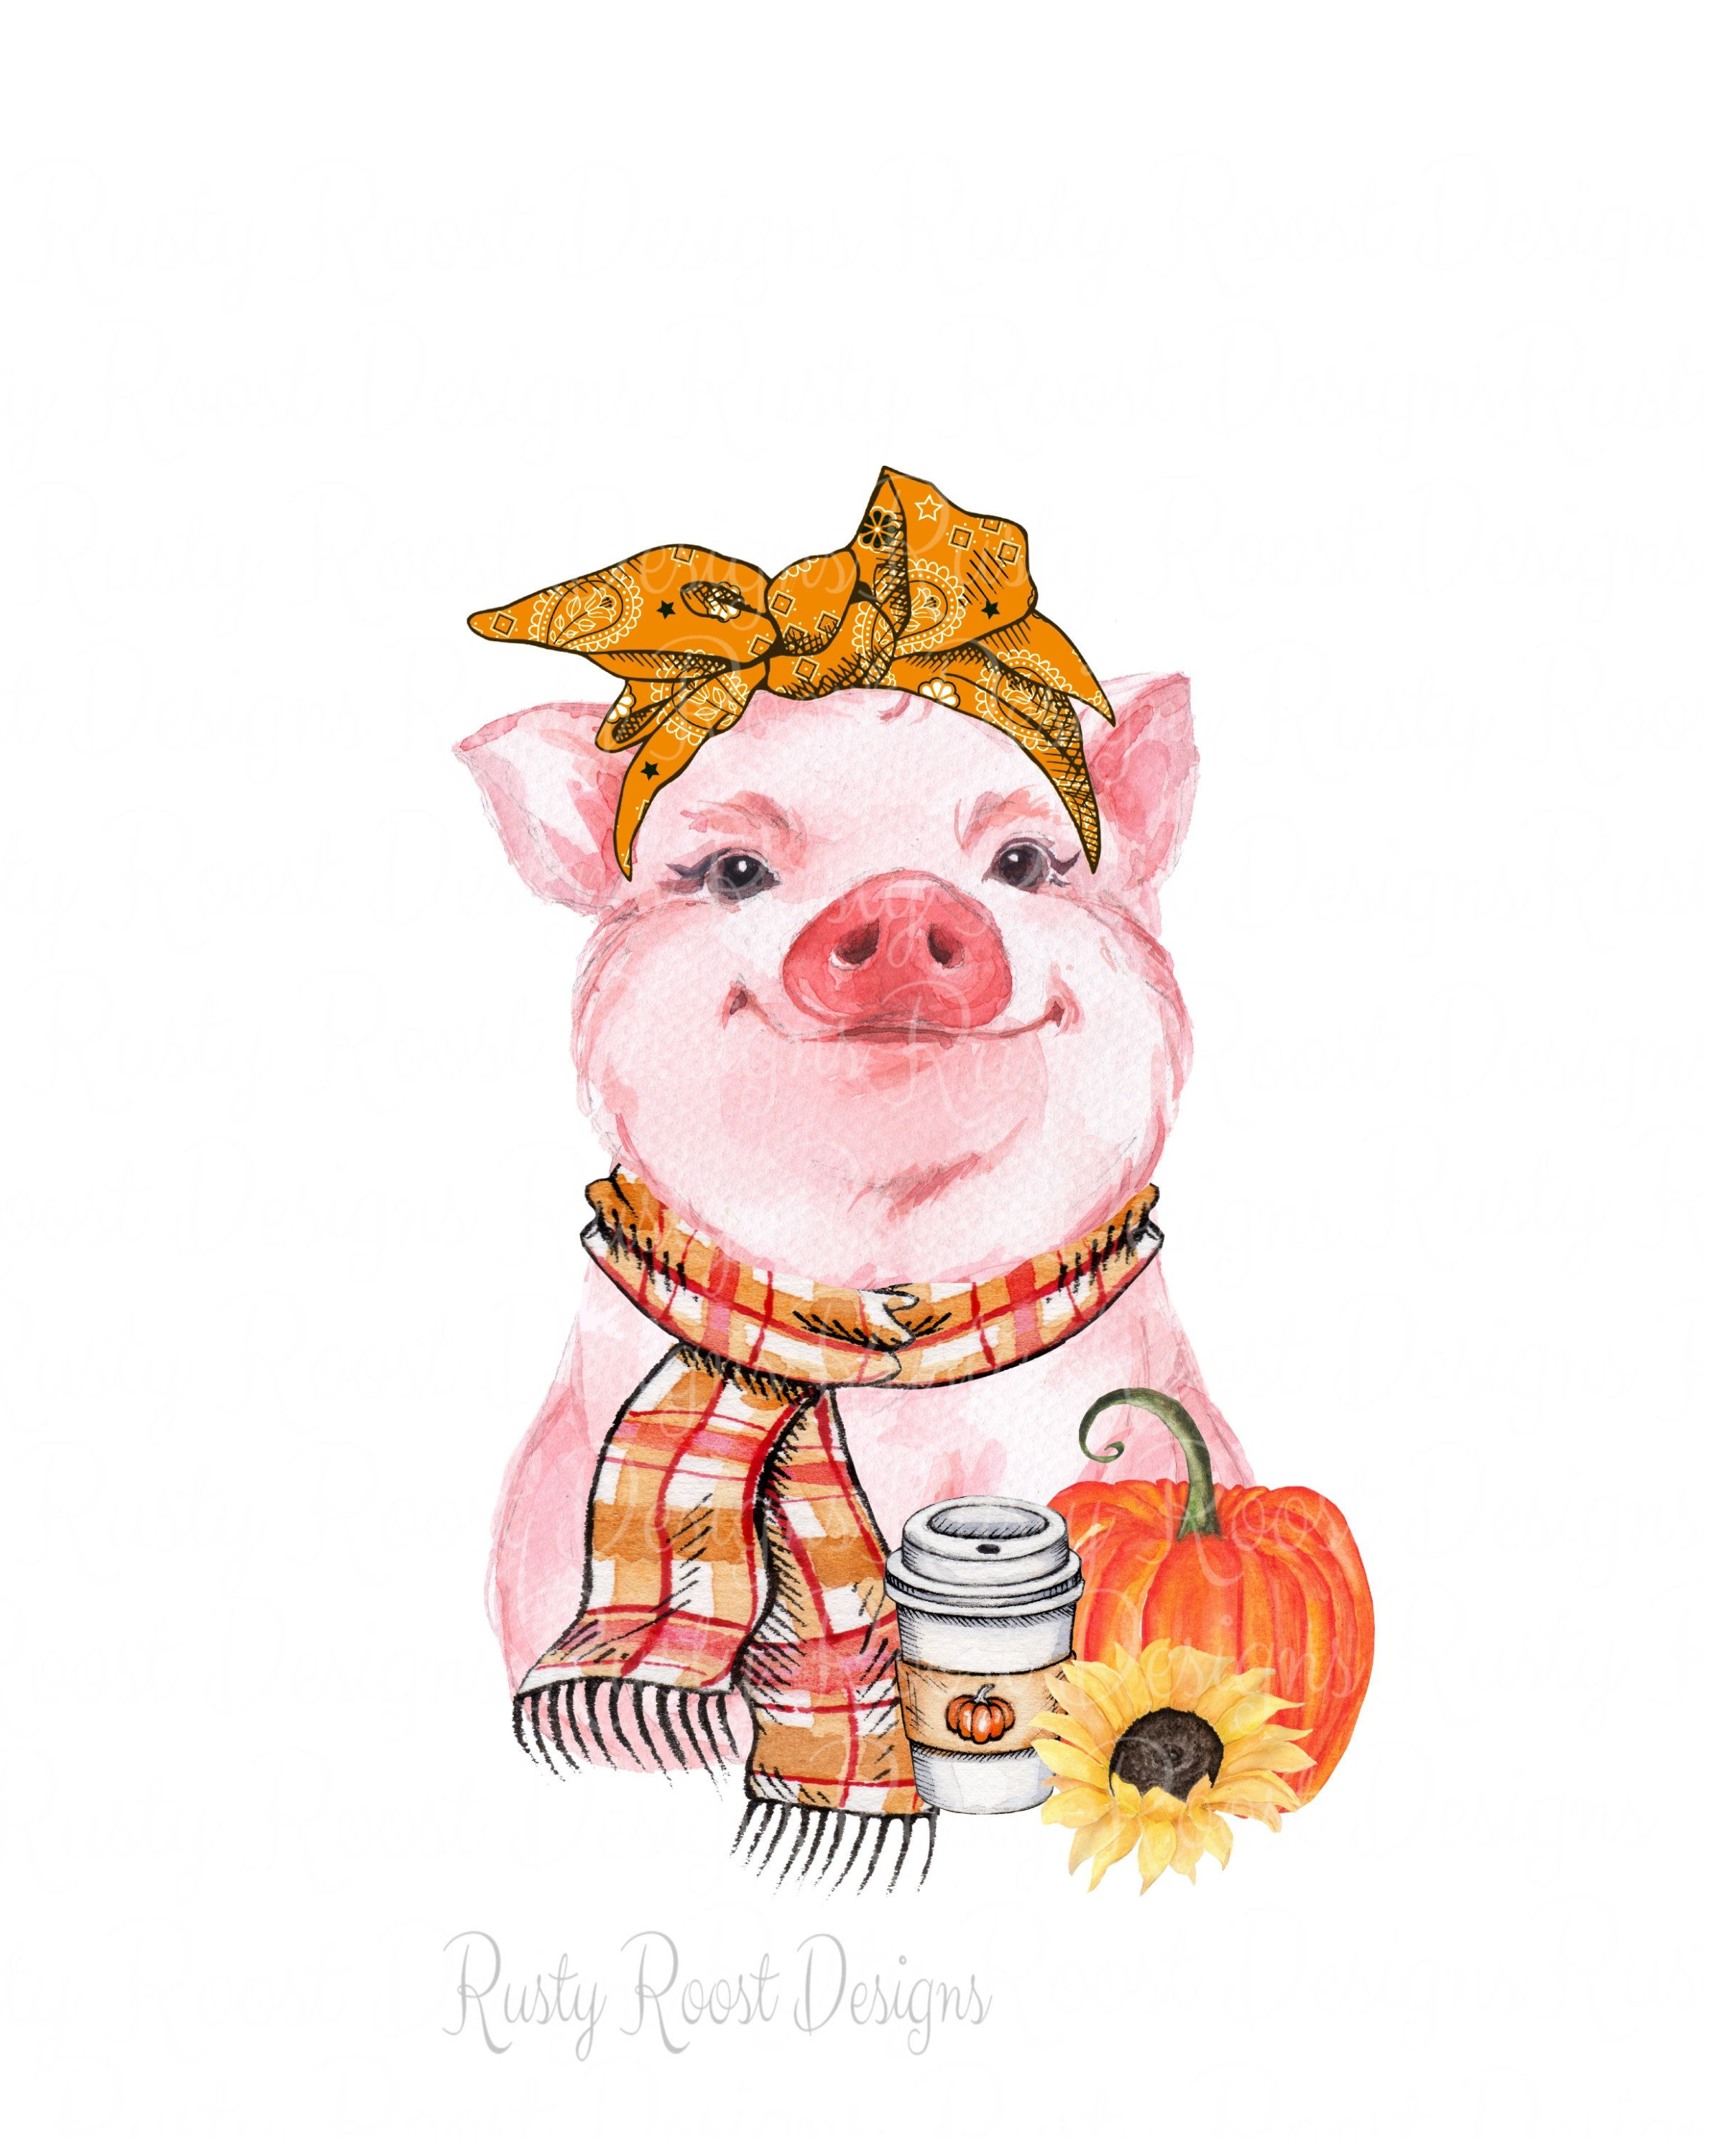 Fall pig png,fall sublimation design download,fall designs,iron on shirt design,pumpkin spice png,pig design,fall pumpkins,digital download #happyfallyallwallpaper